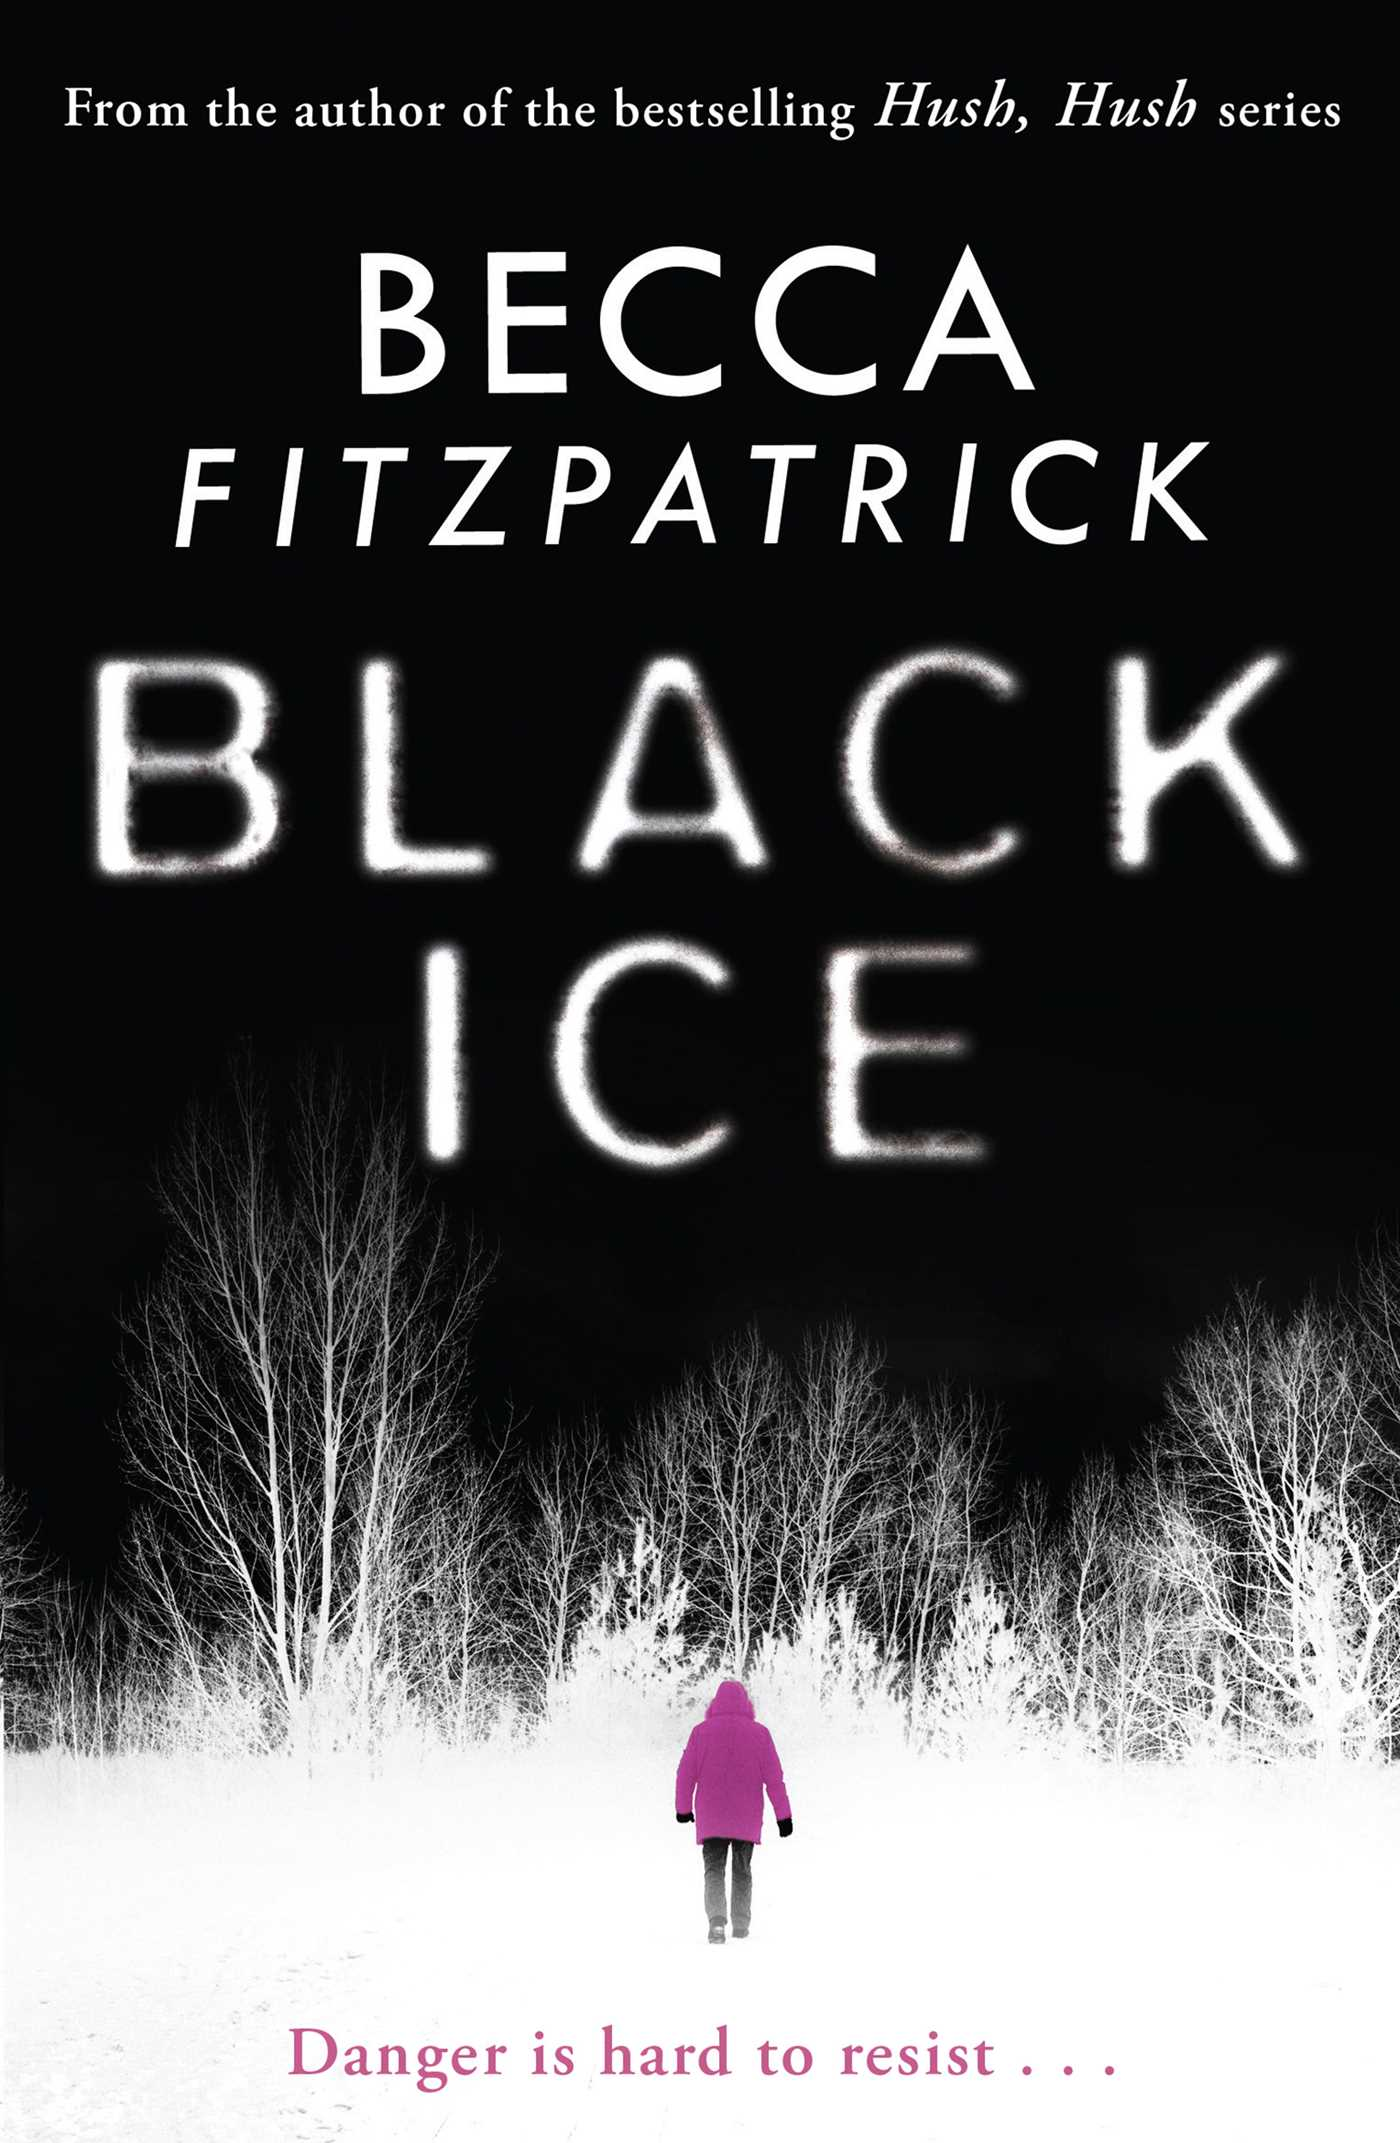 Image result for black ice becca fitzpatrick book cover